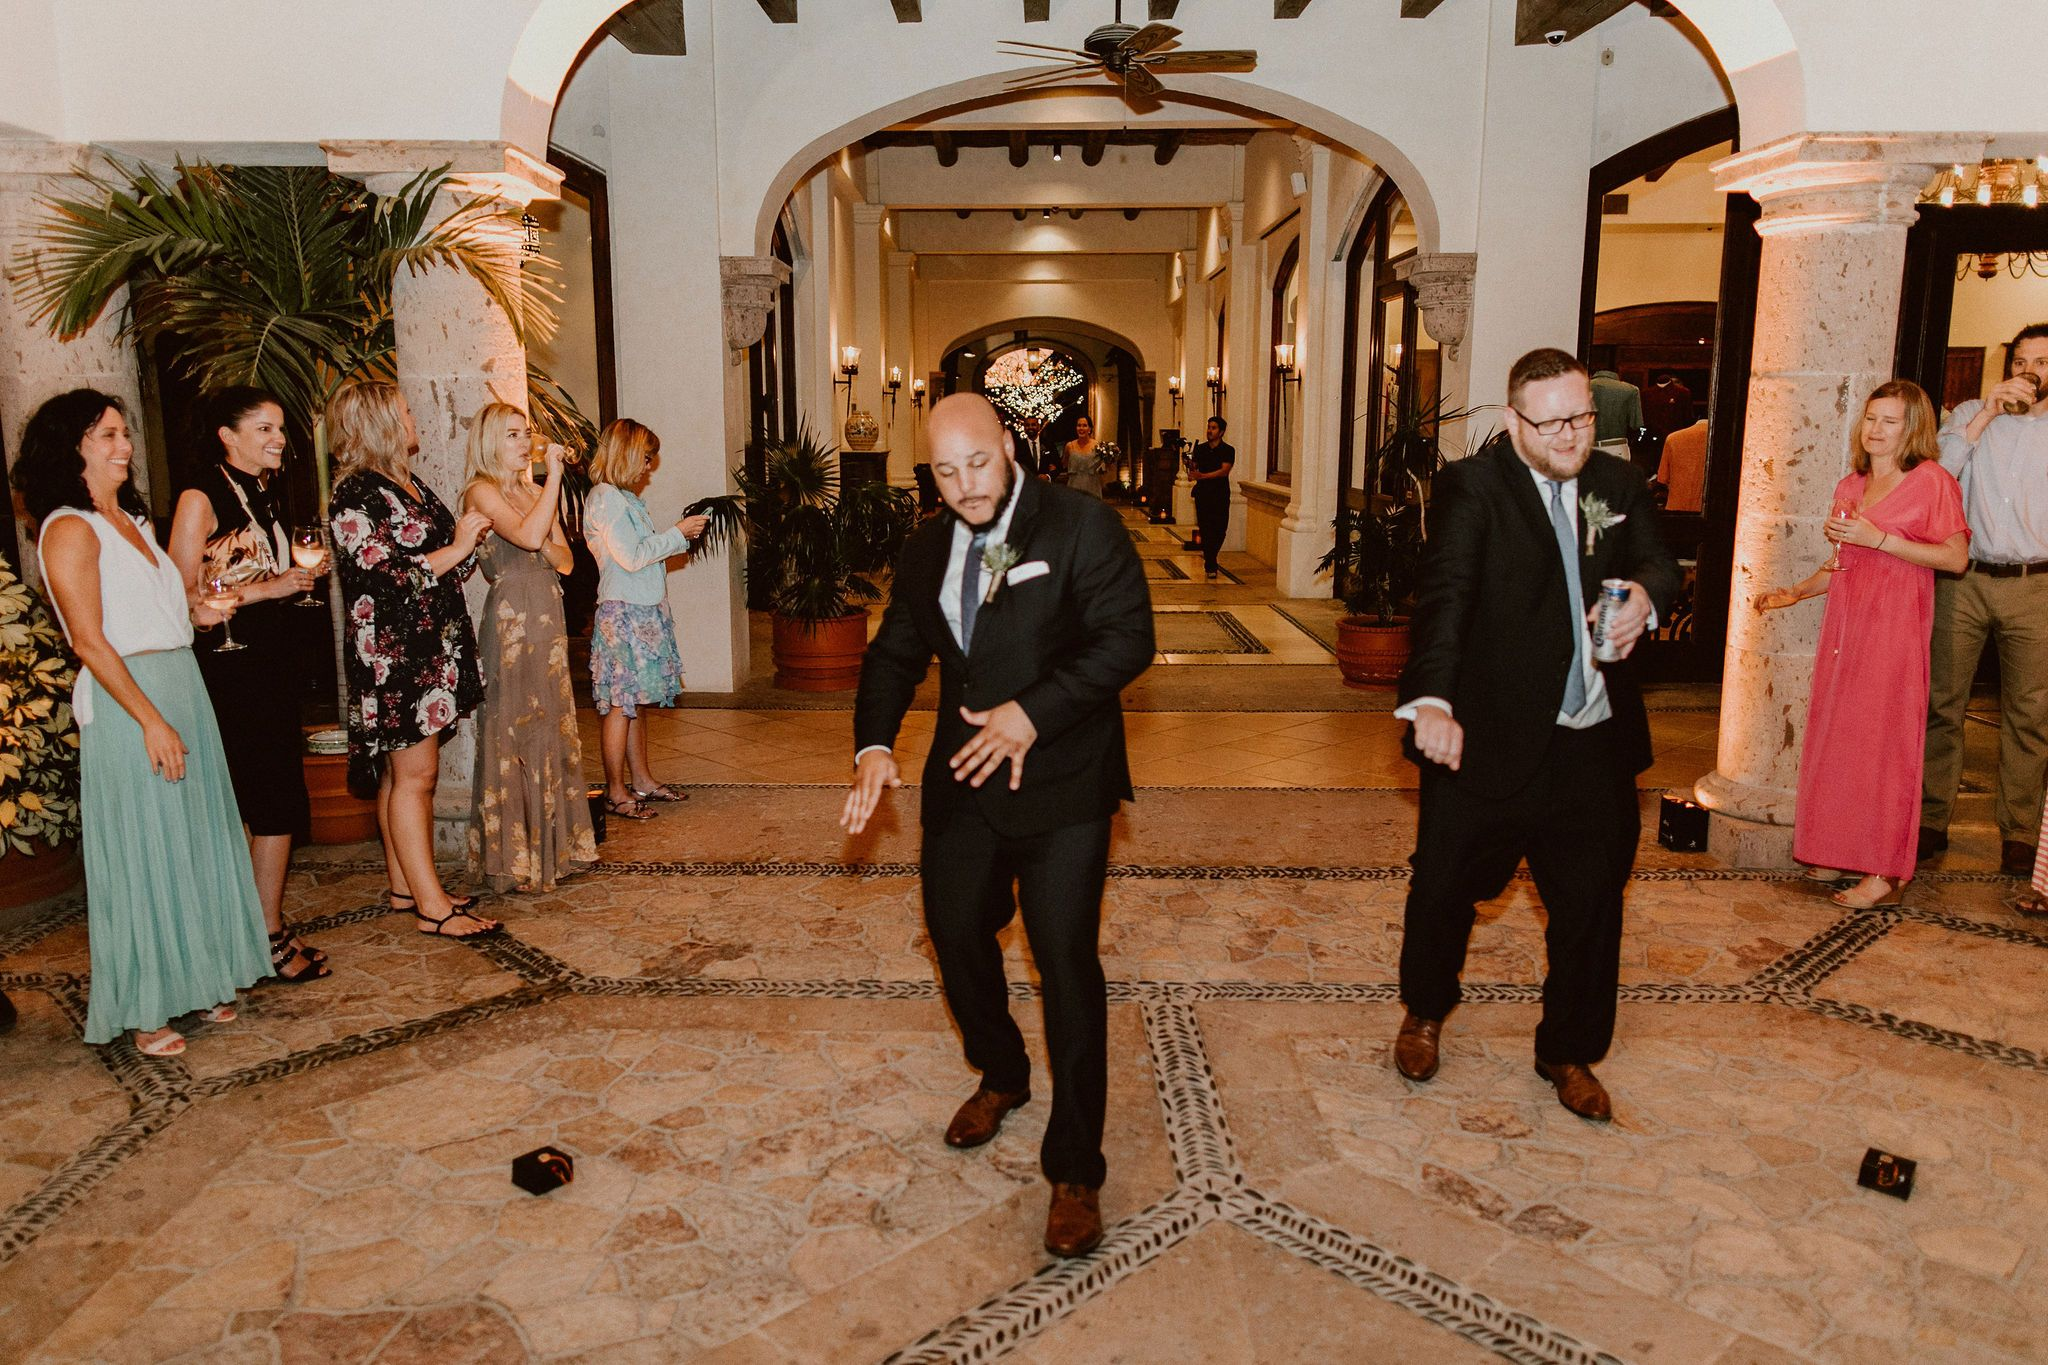 Groomsmen dancing at the Bridal Party Grand Entrance, prior to the Bride and Groom entering. Wedding Destination at Cabo del Sol, in Los Cabos, Mexico. Wedding Planning by Cabo Wedding Services